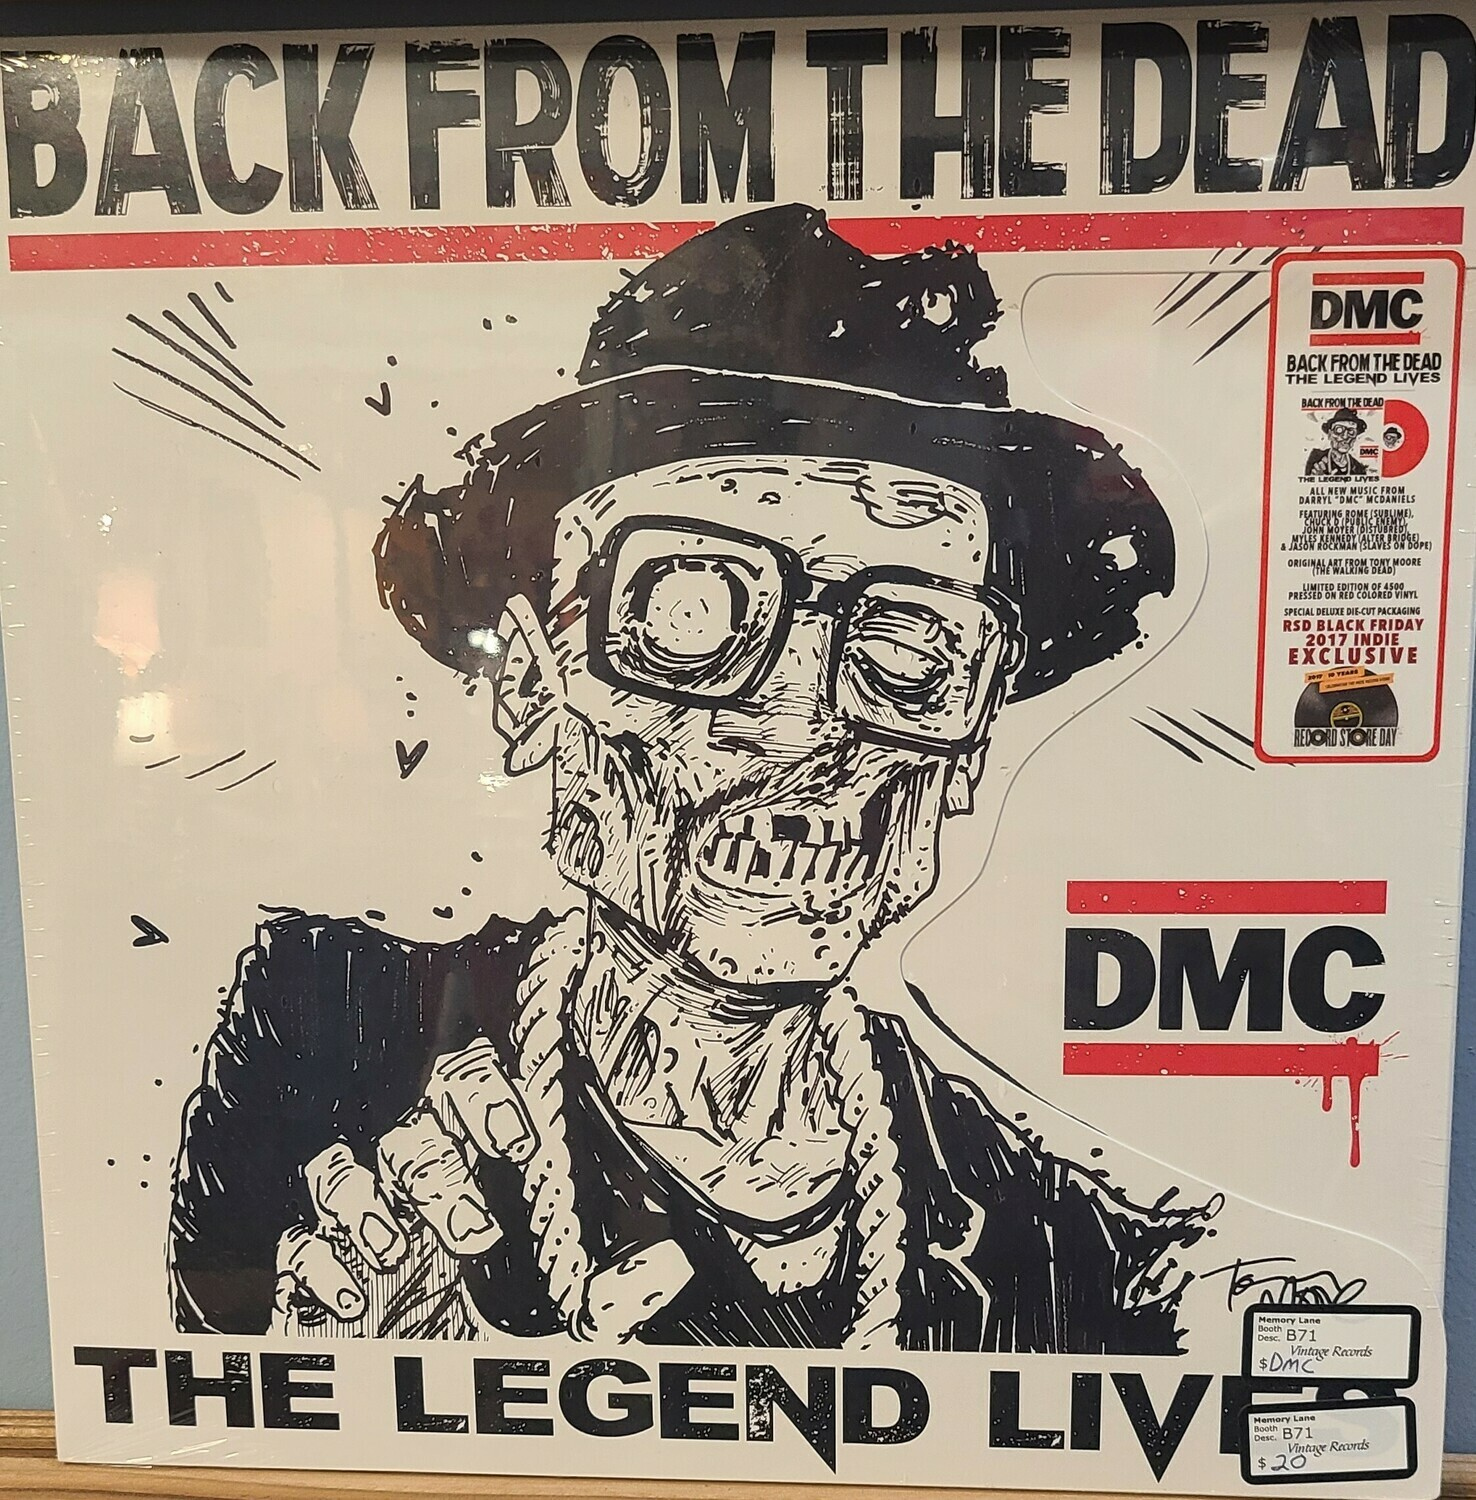 DMC - LP - Back From The Dead